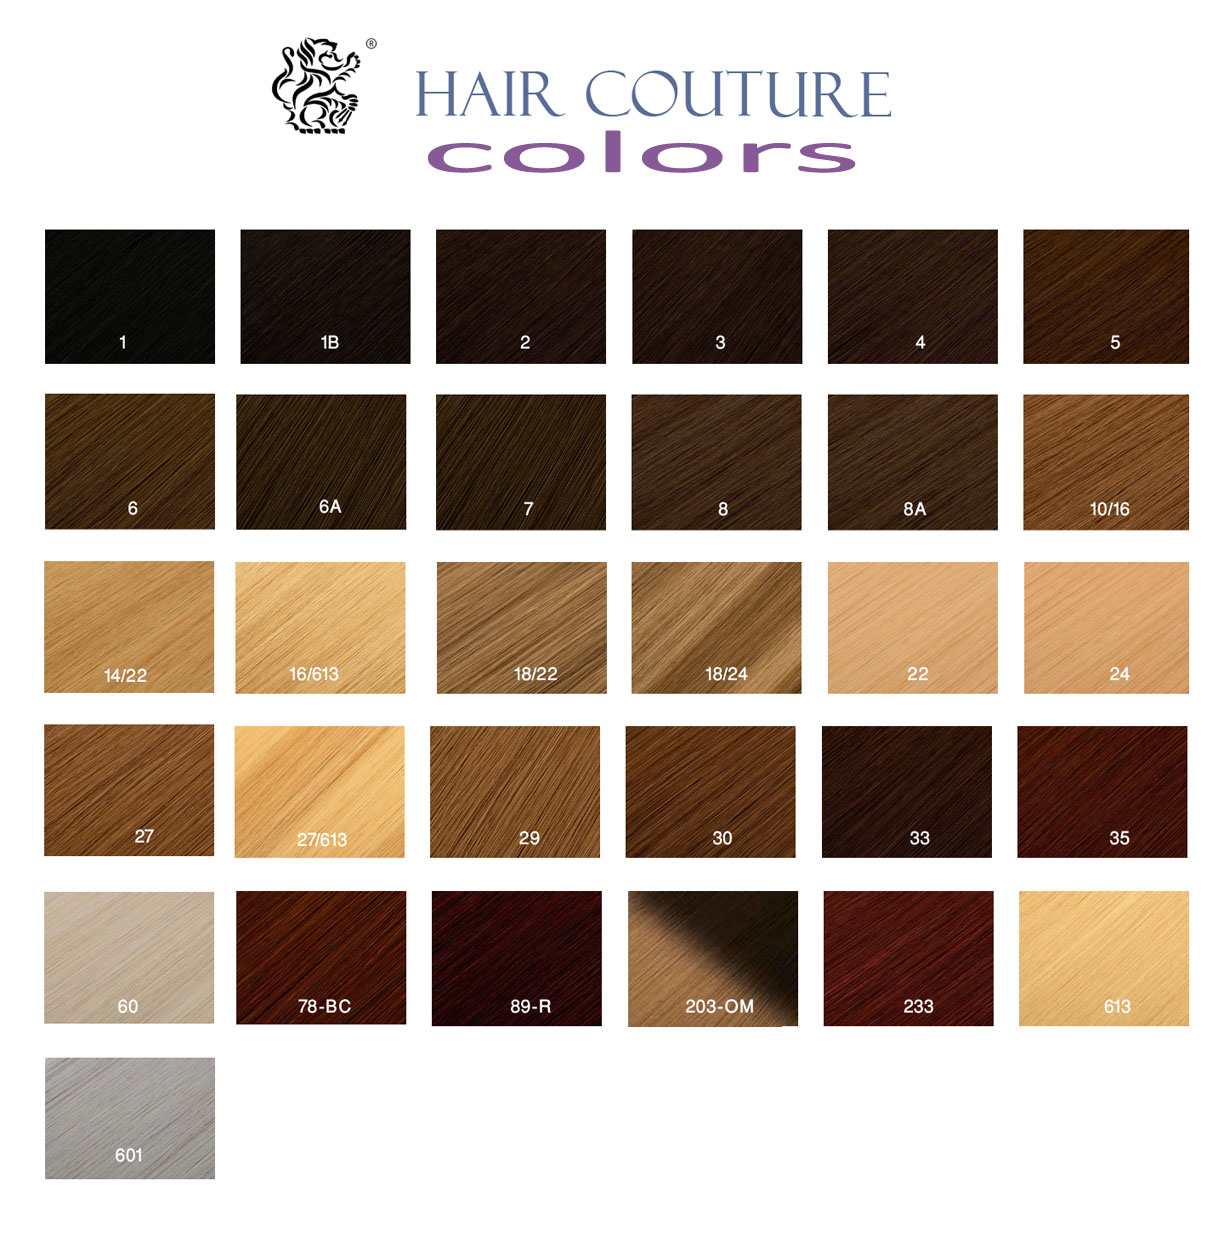 HAIR COUTURE COLOR CHART